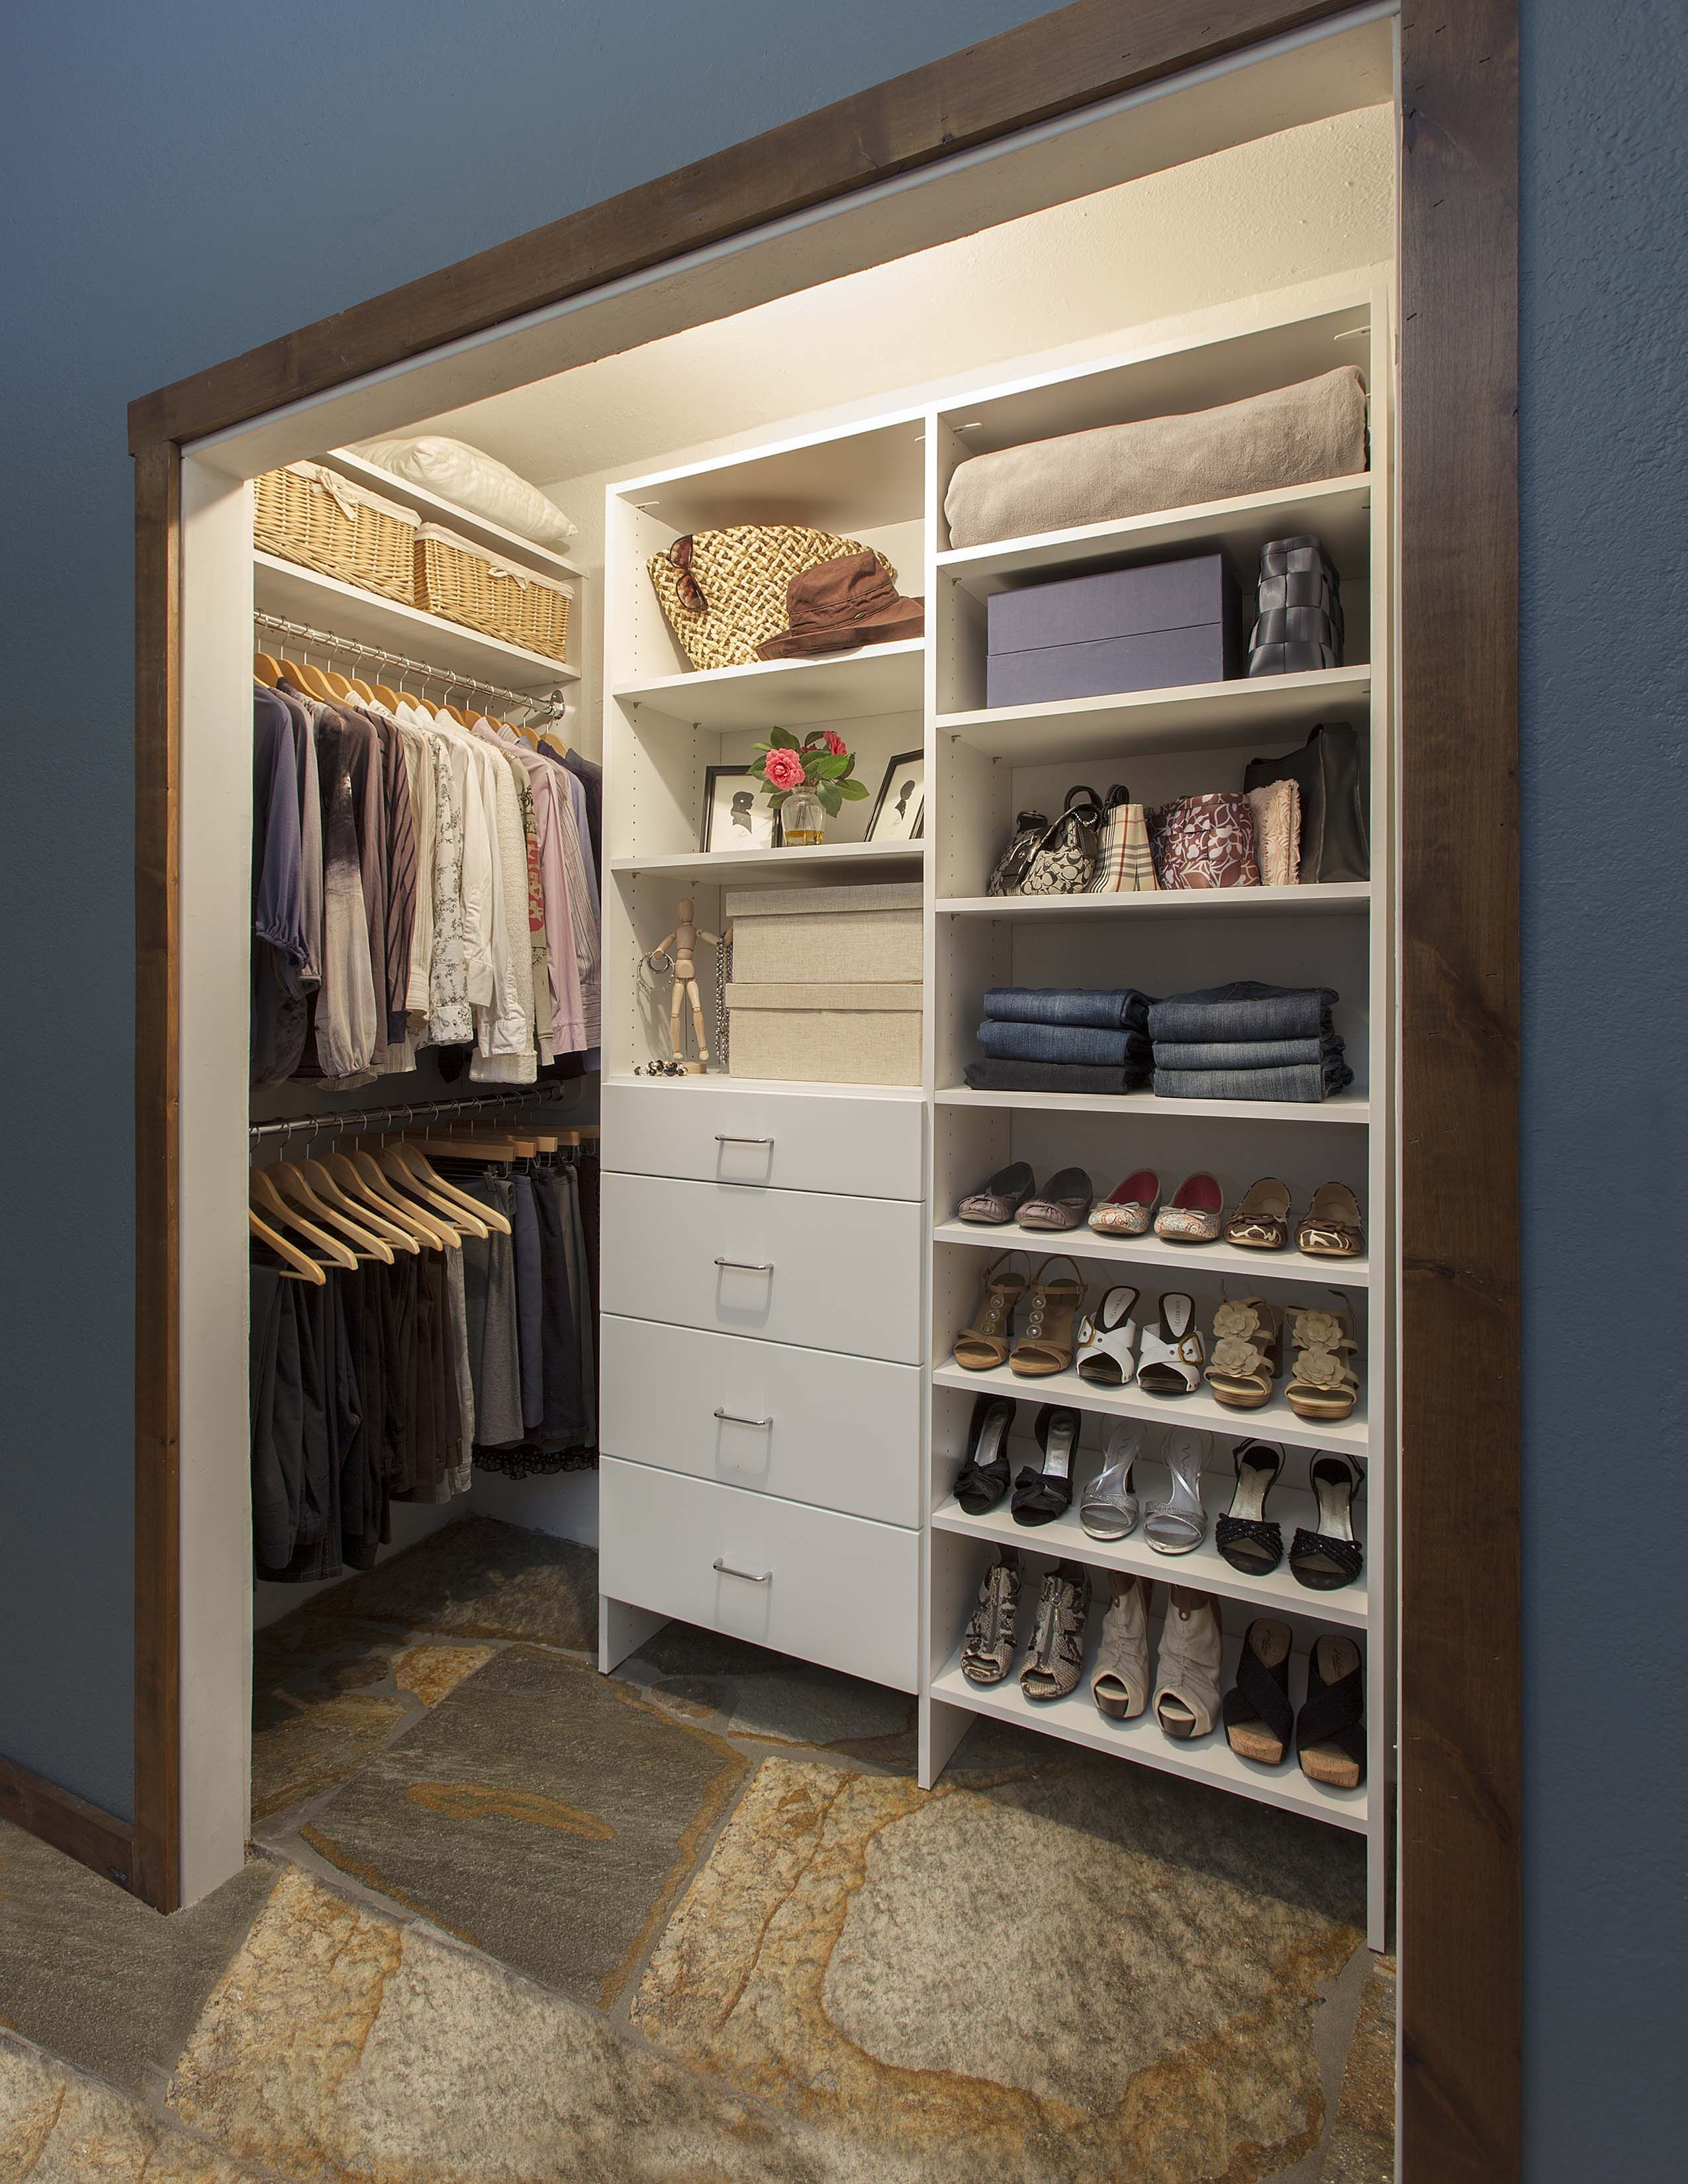 Tiefer Schrank Reach In Closet Is There Enough Depth To Do This On One